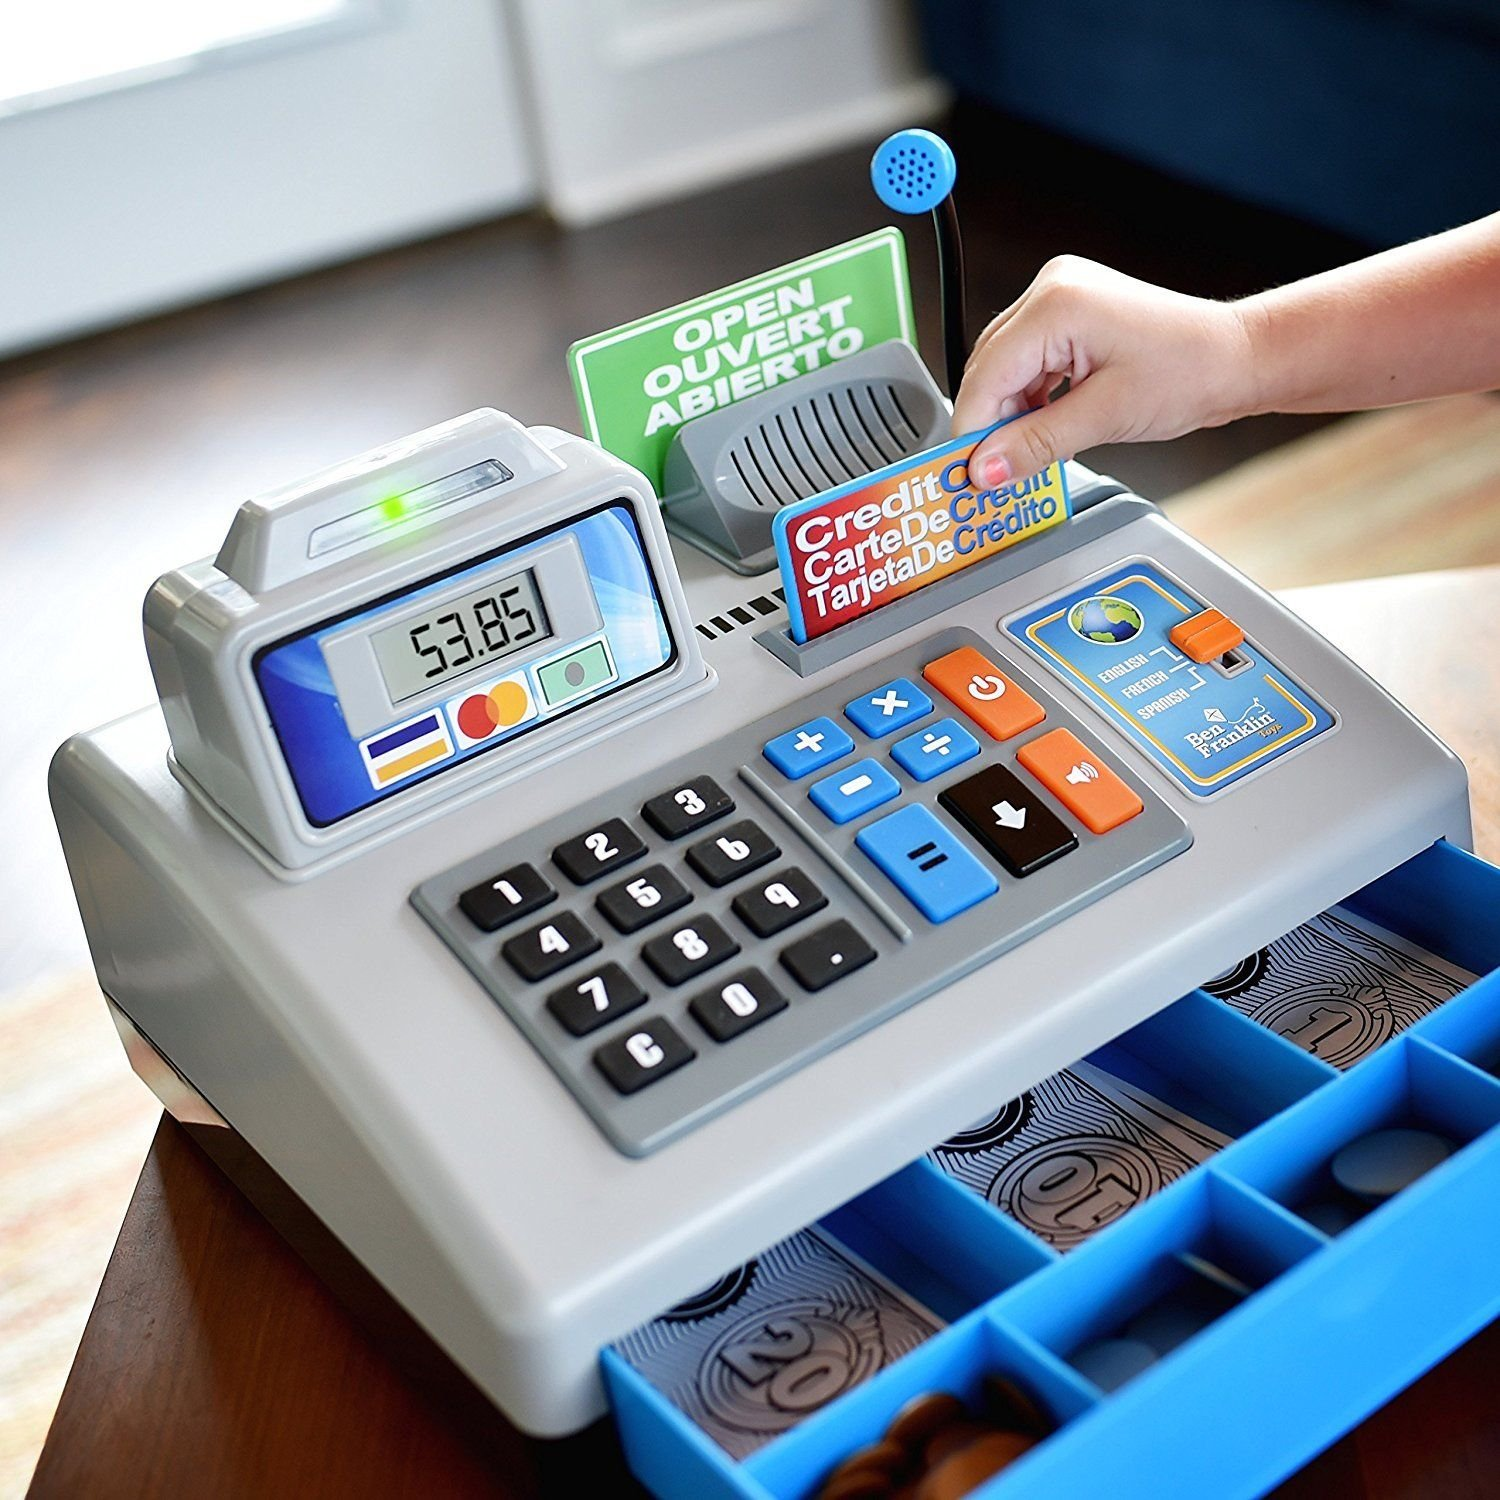 BFT Talking Cash Registerキットwith 3言語学習、ページングfor Ages 3 +再生ギフトアイデアから両親祖父母または BF554  シルバー/グレー B07DQLXYPS